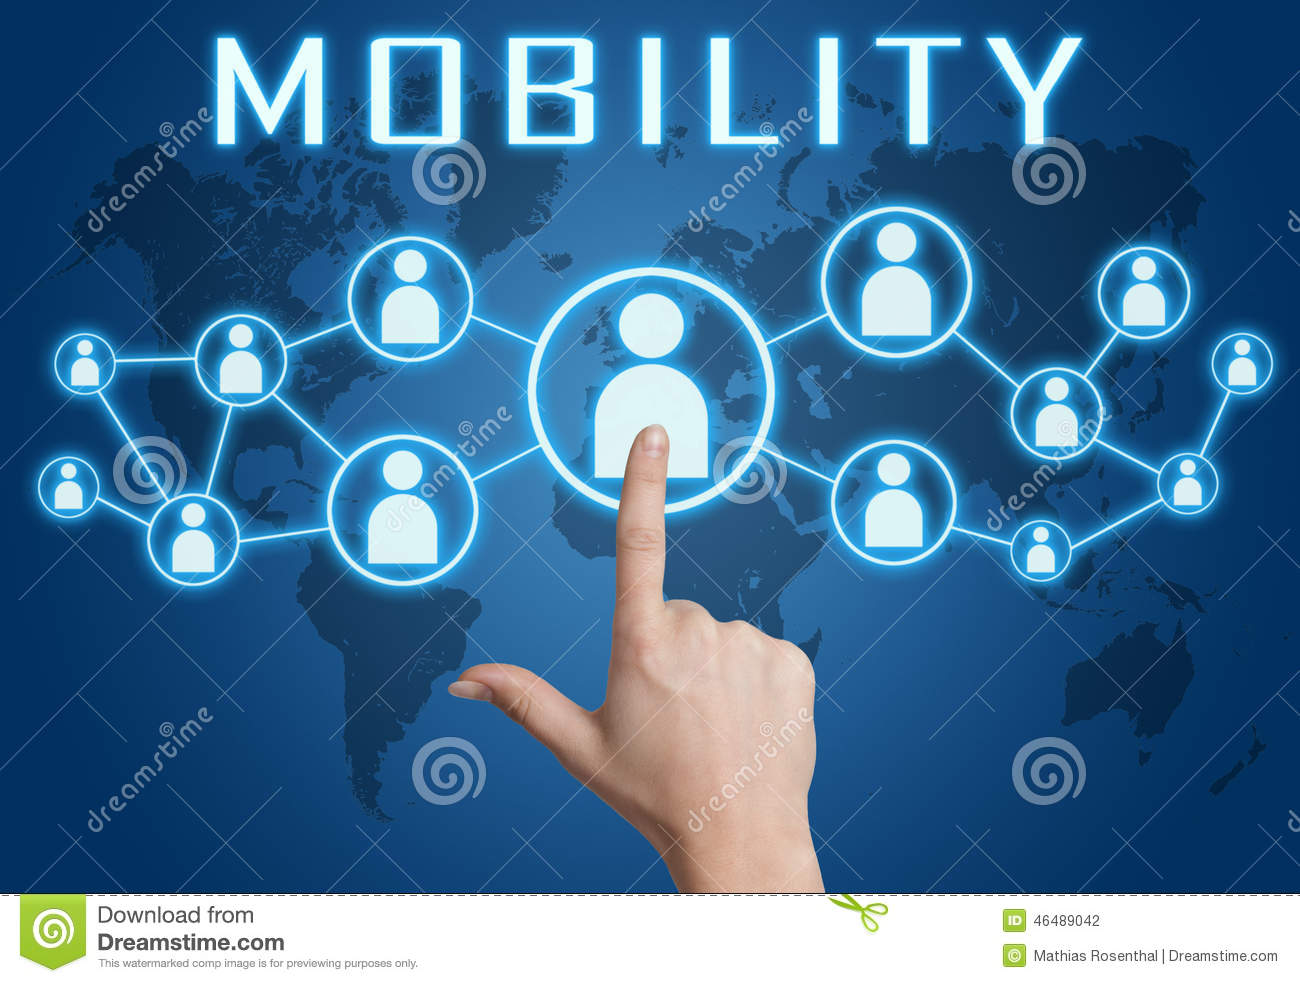 Mobility Concept Hand Pressing Social Icons Blue World Map Background